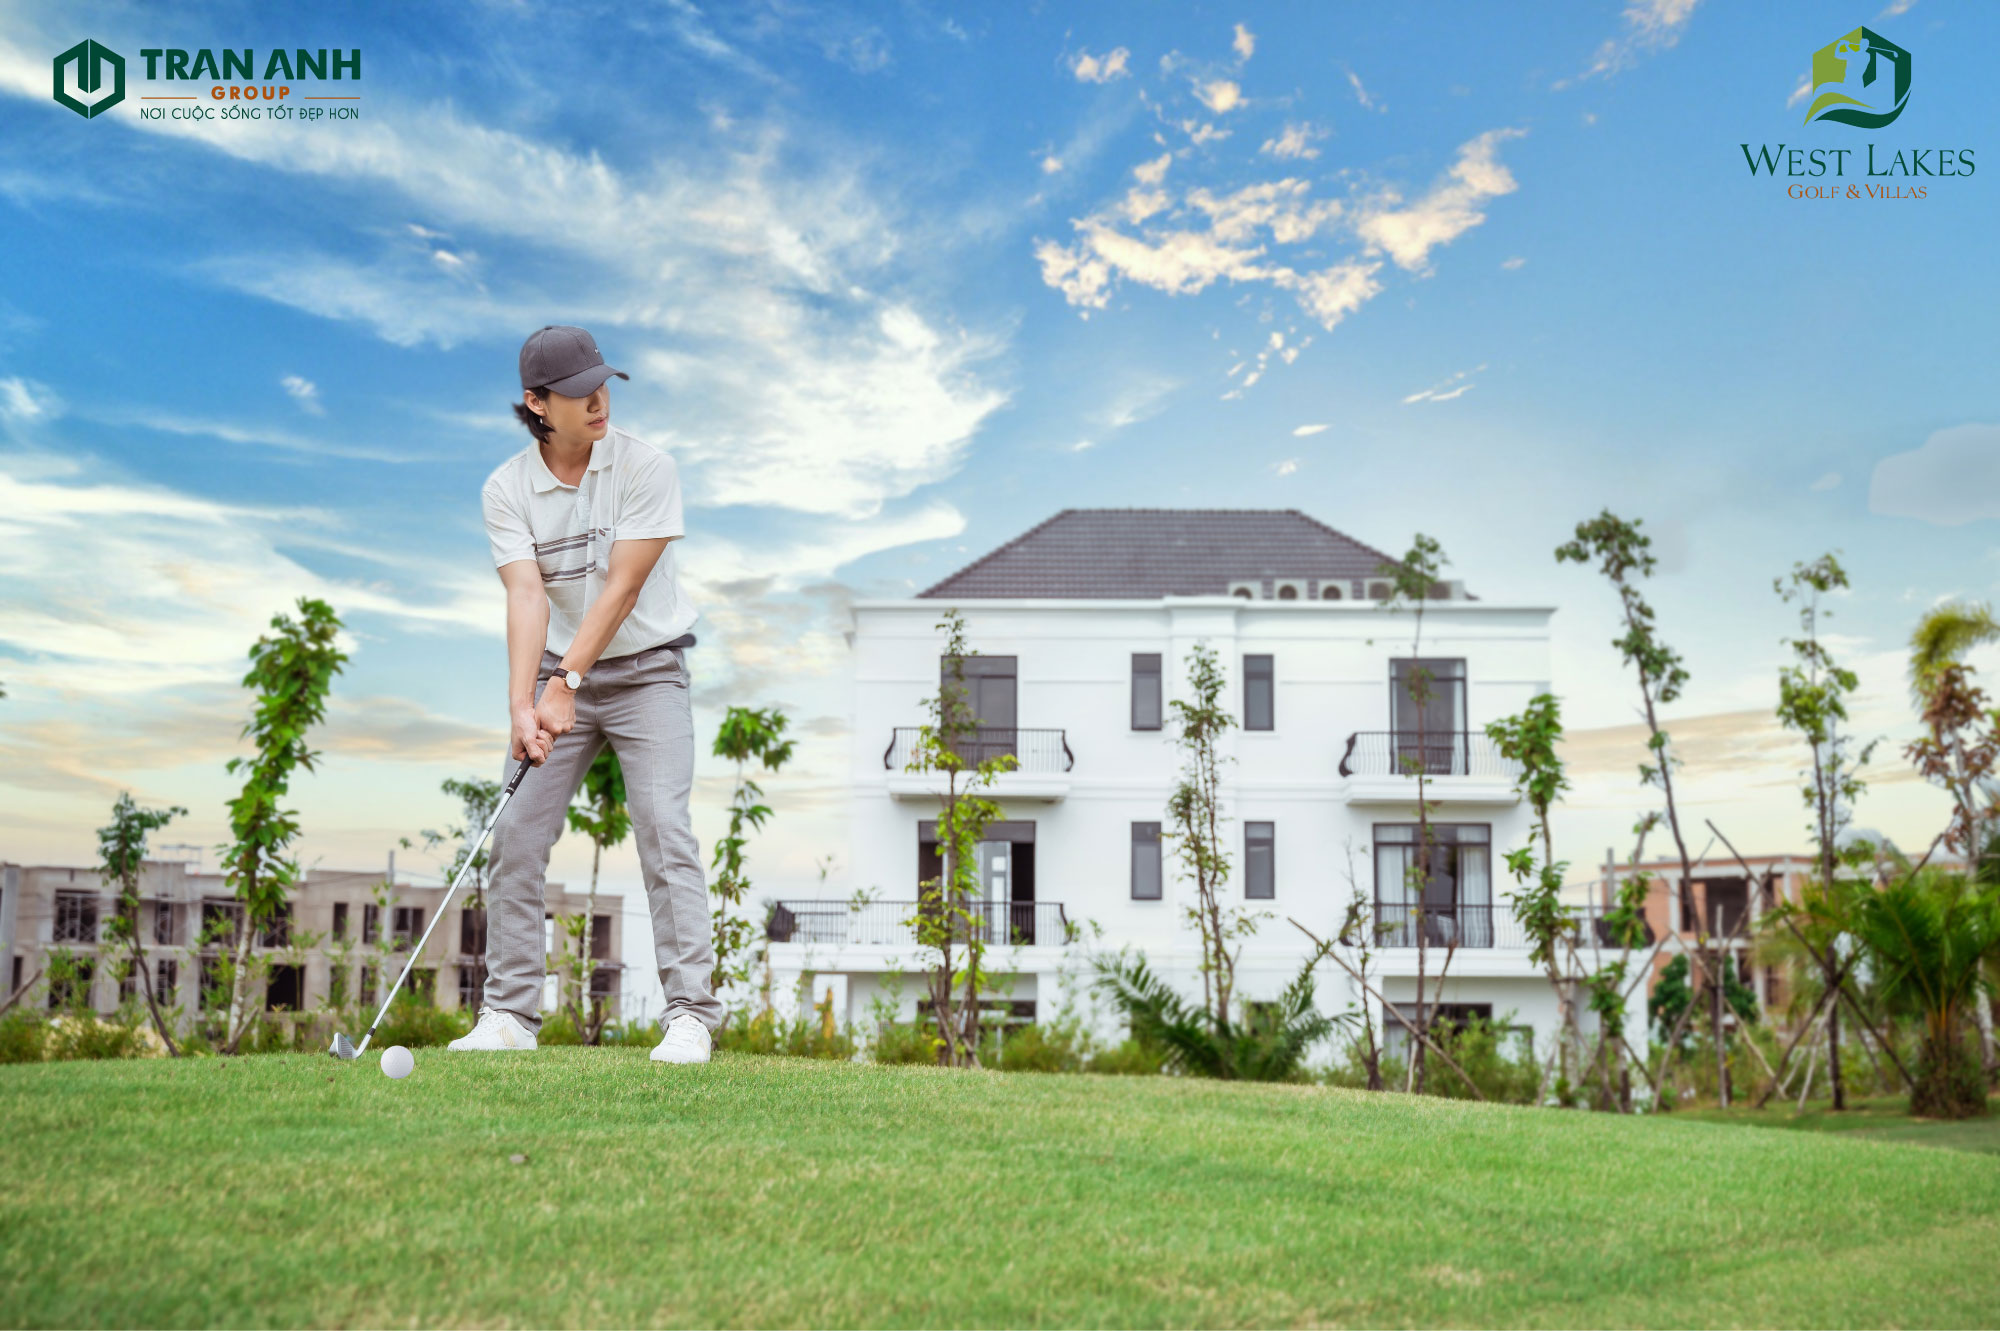 westlakes golf and villas